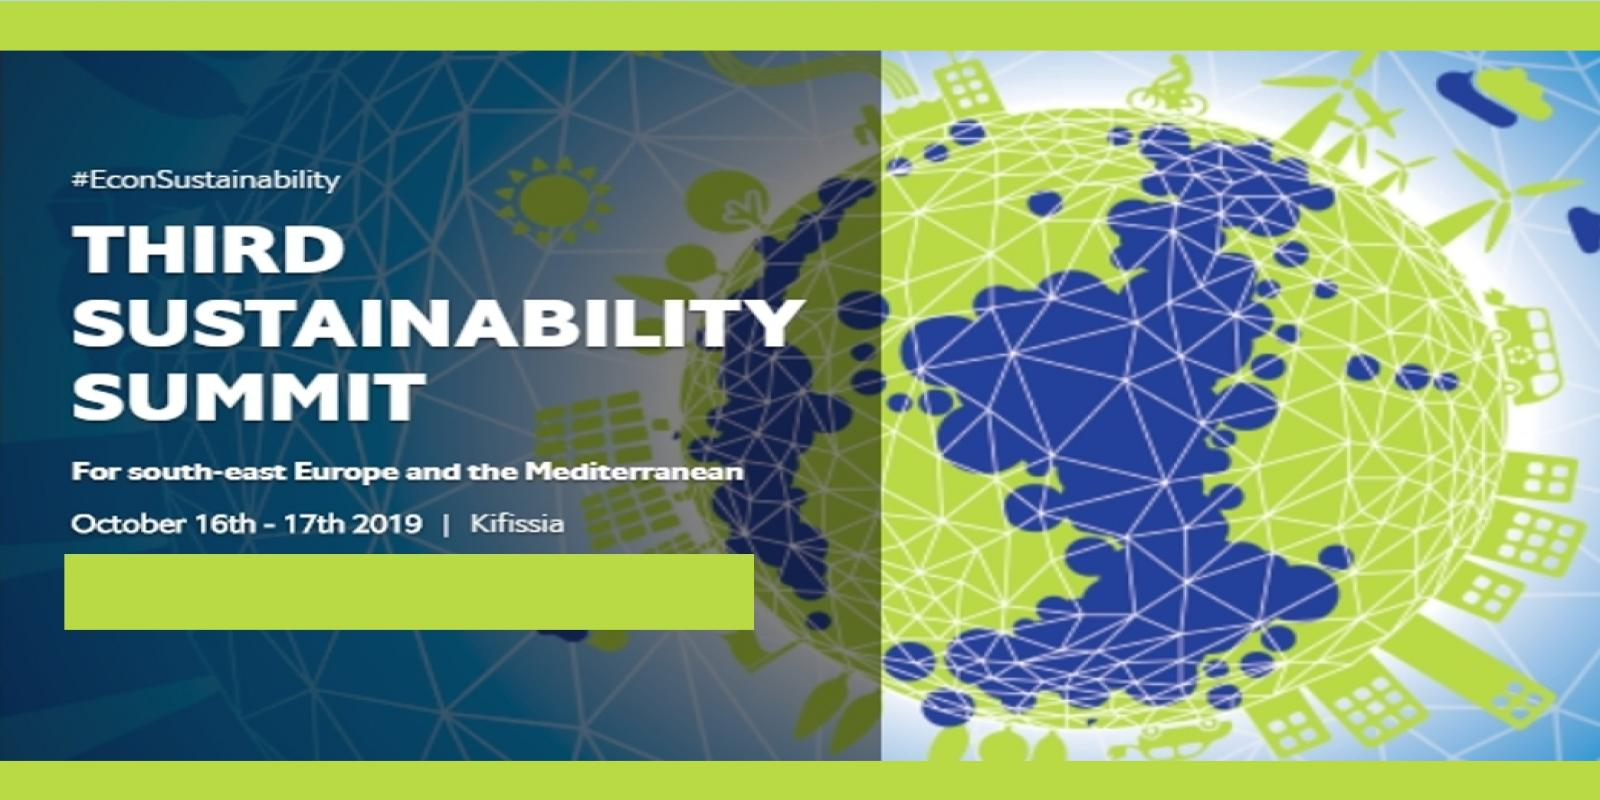 3rd Sustainability Summit